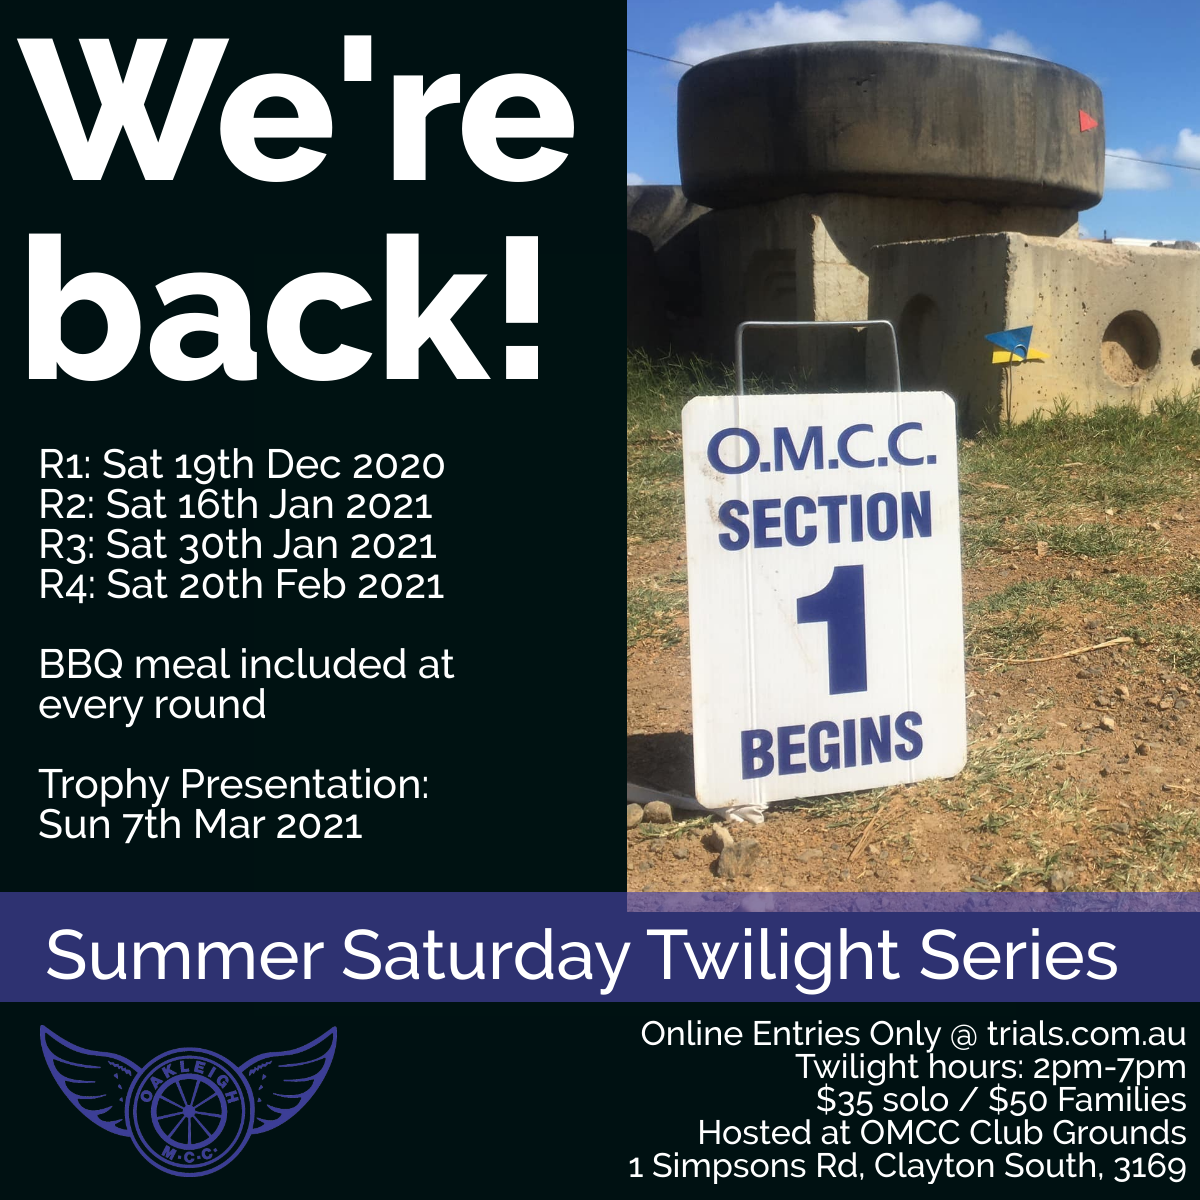 Results for OMCC Round 1 - Summer Saturday Twilight Series